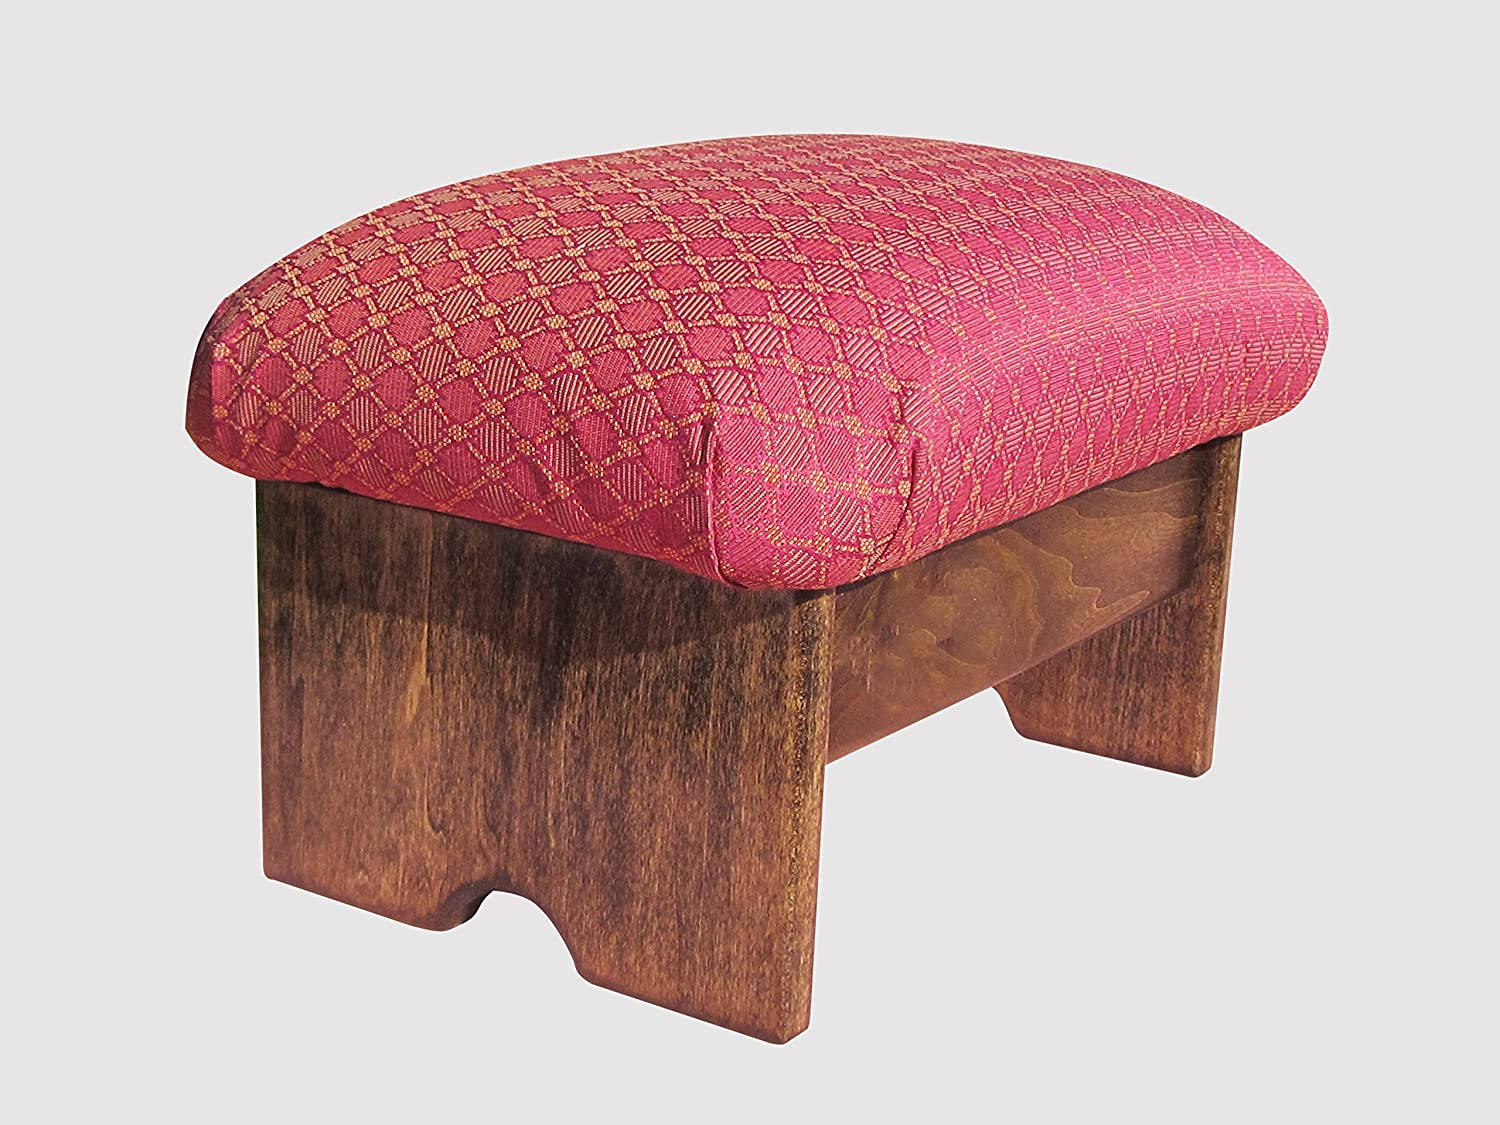 Padded Foot Stool, Ruby Red (Made in The USA) (Walnut Stain - 9  Tall)